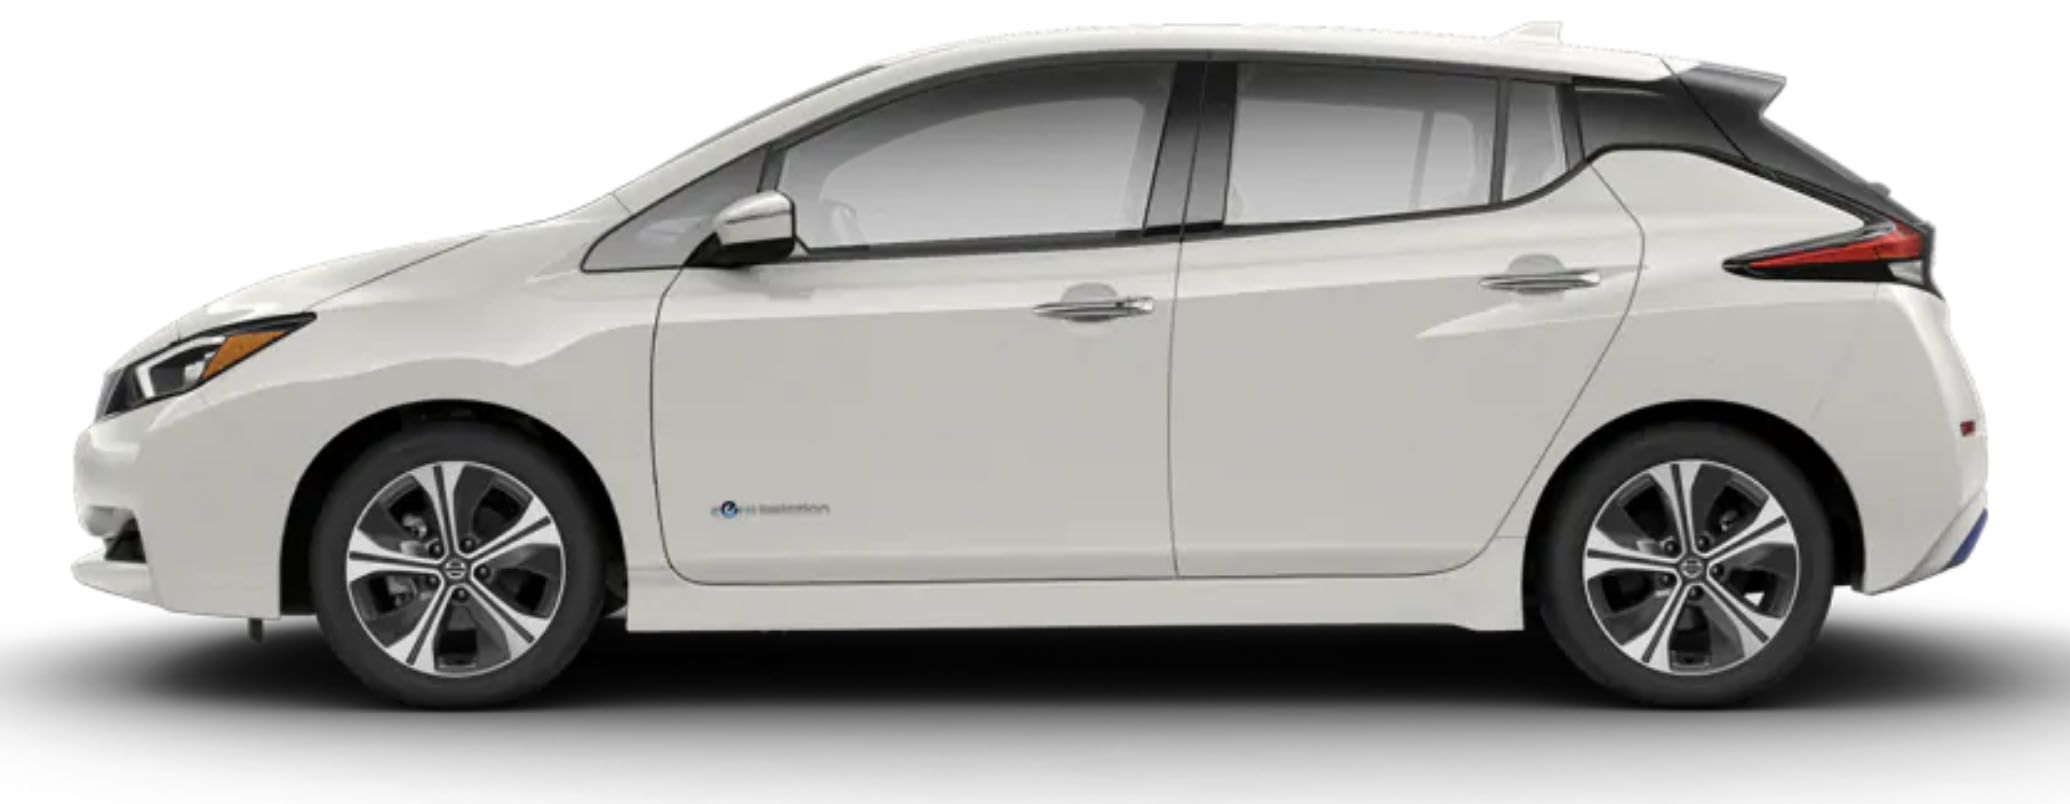 Side-view of 2019 Nissan Leaf electric car in pearl white tricoat finish against a white background.